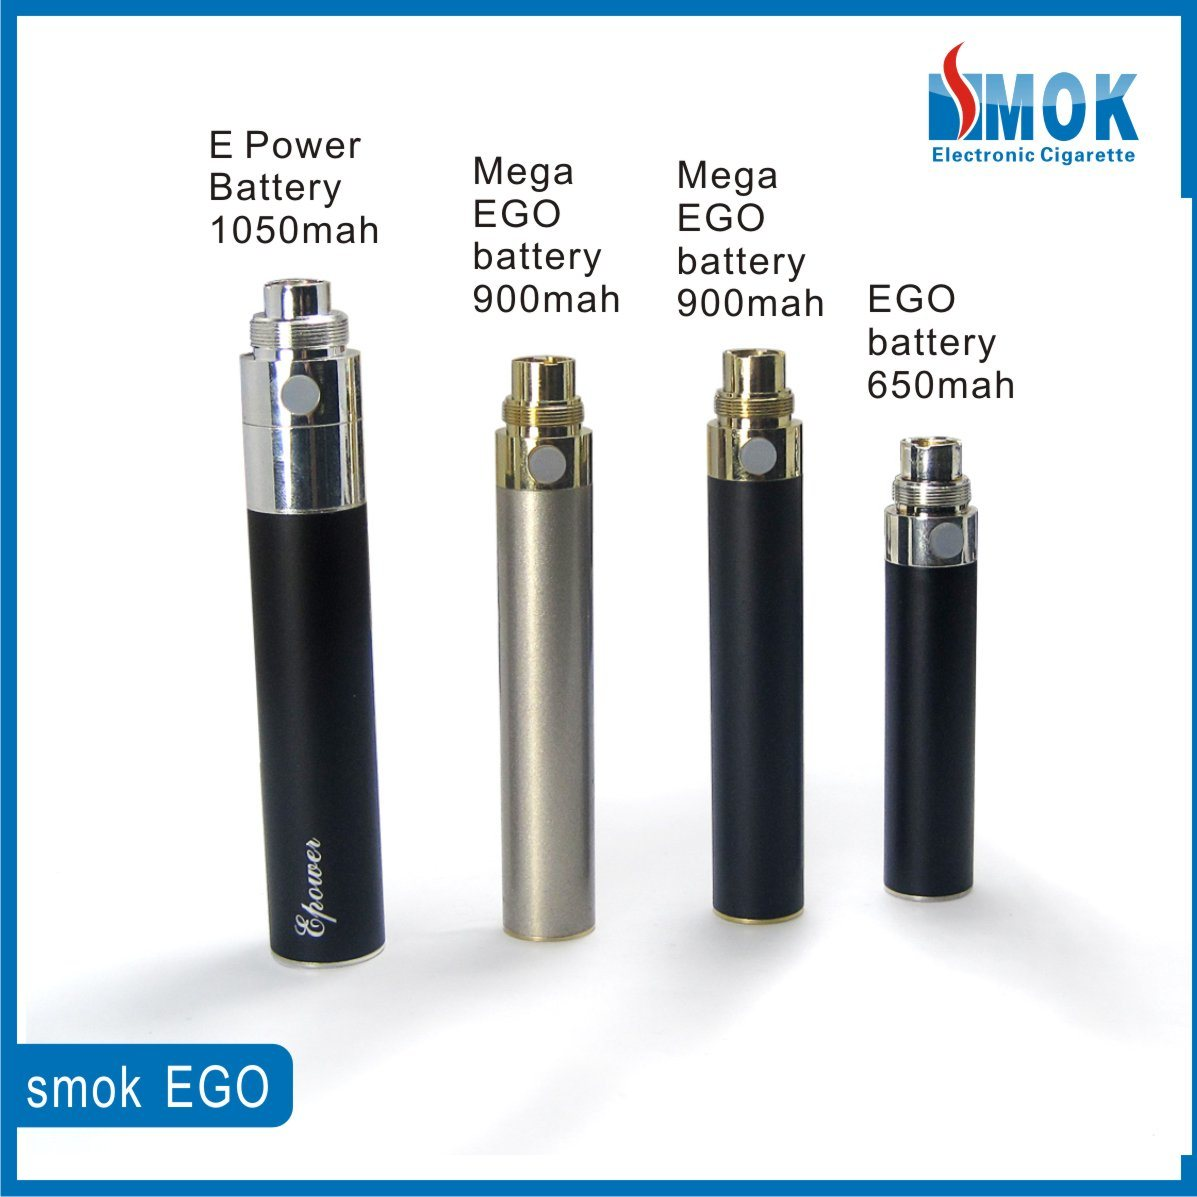 Best e cig to stop smoking